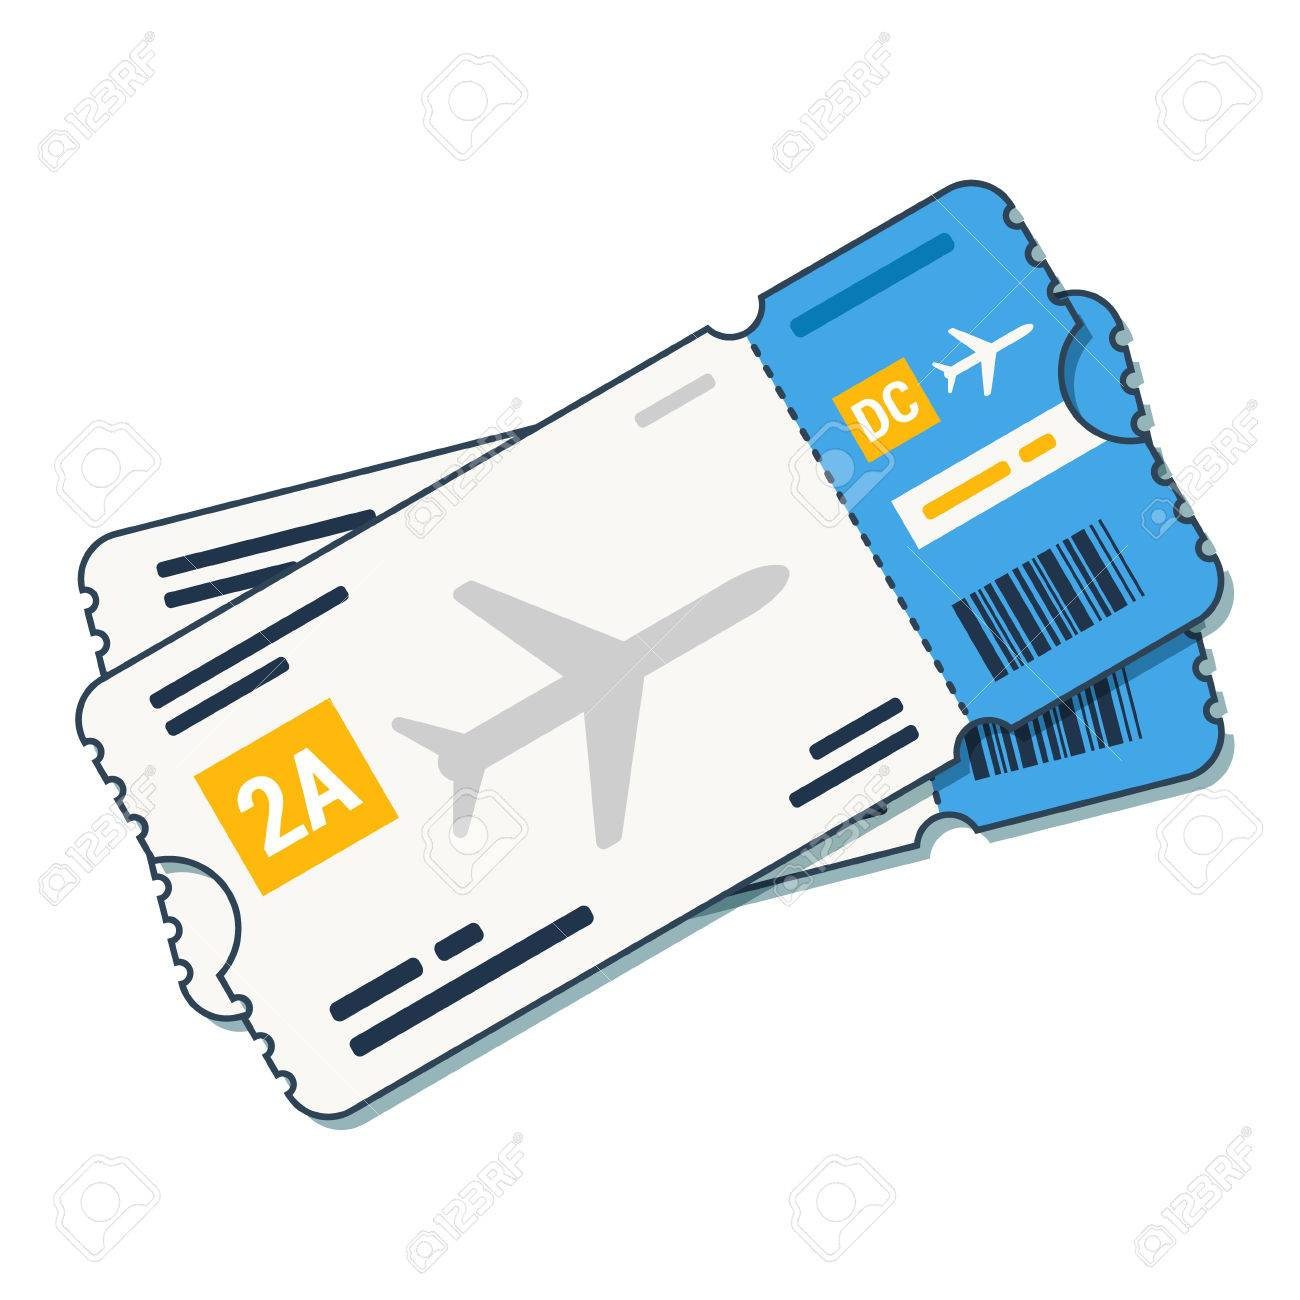 Airline tickets ,boarding pass icon Airline boarding pass.